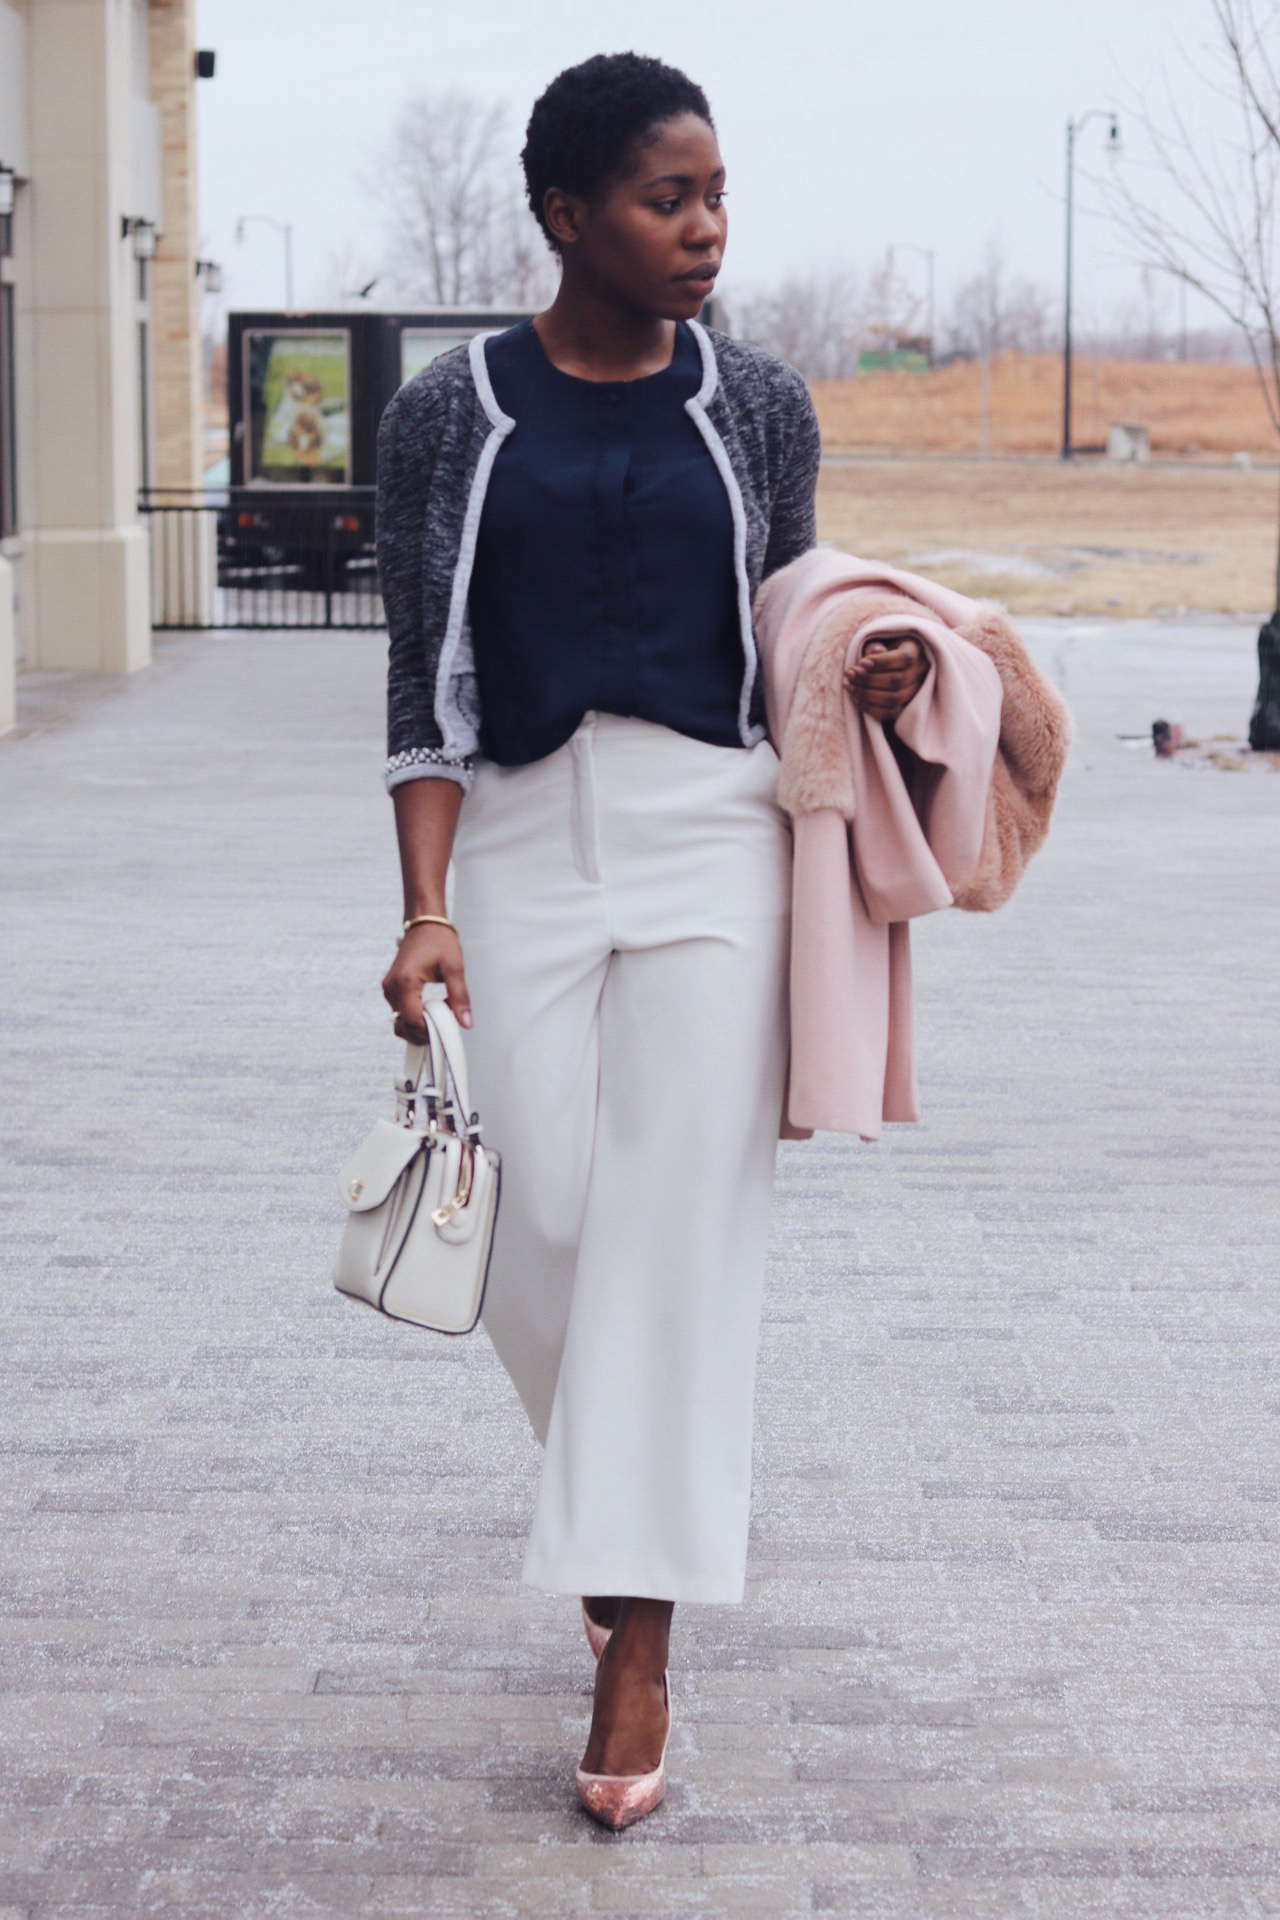 ALT=BUSINESS PROFESSIONAL OUTFIT